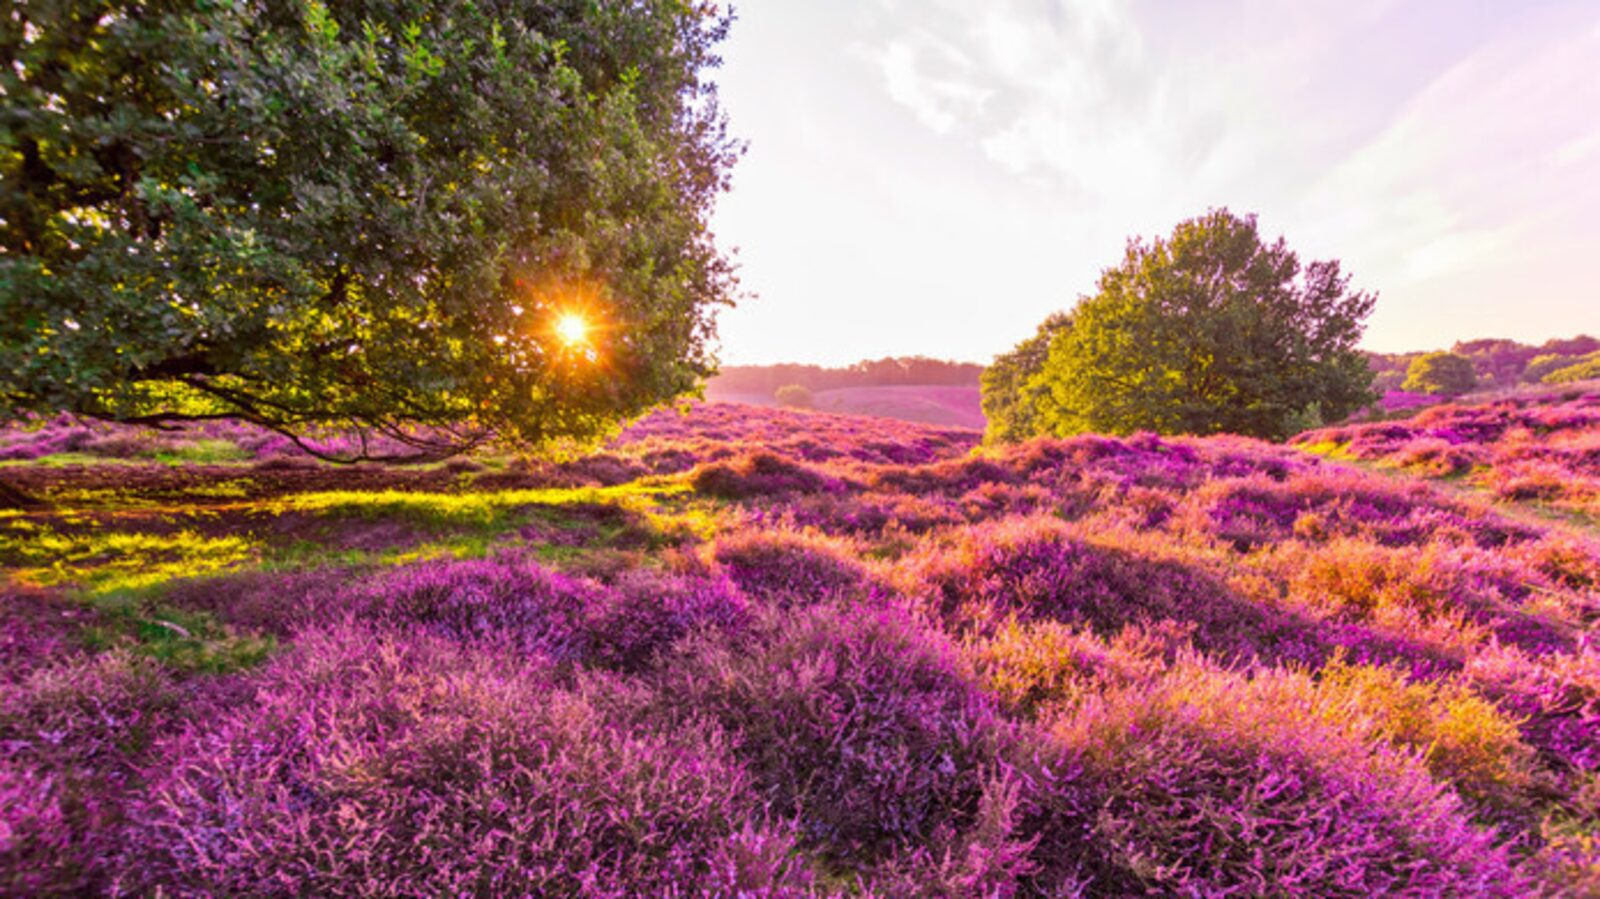 The purple carpet of blooming heather, experience weeks